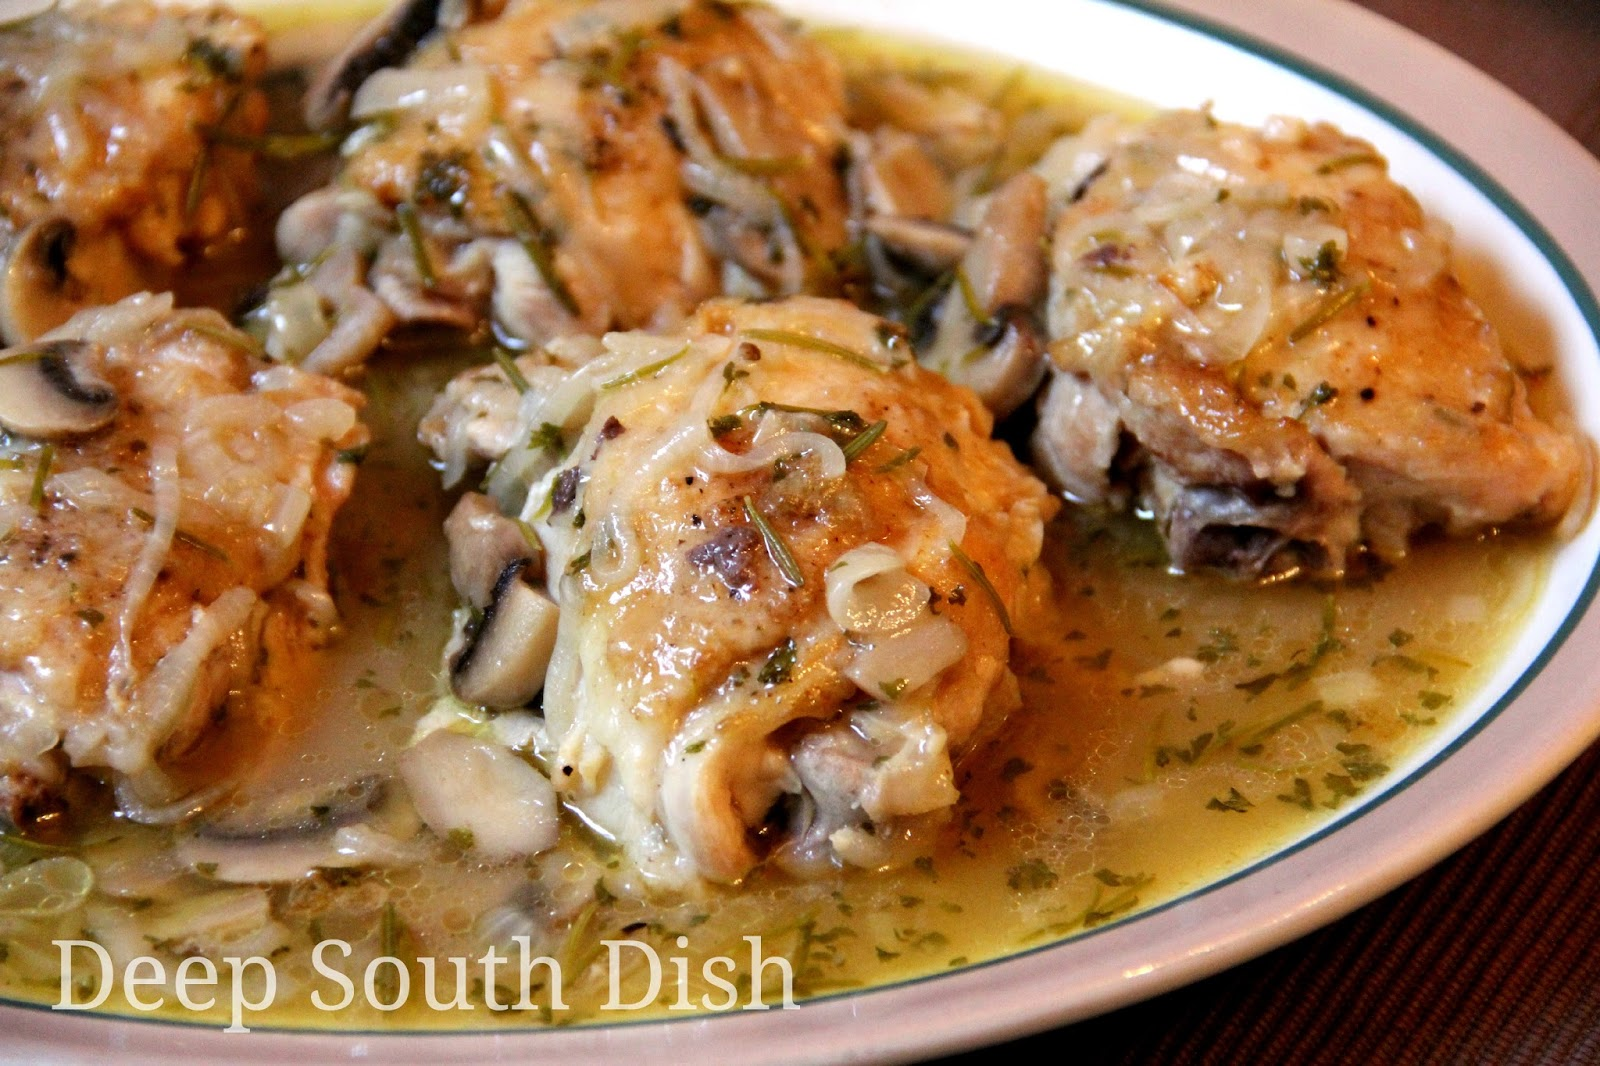 Deep South Dish: Braised Chicken Thighs with Onions and ...